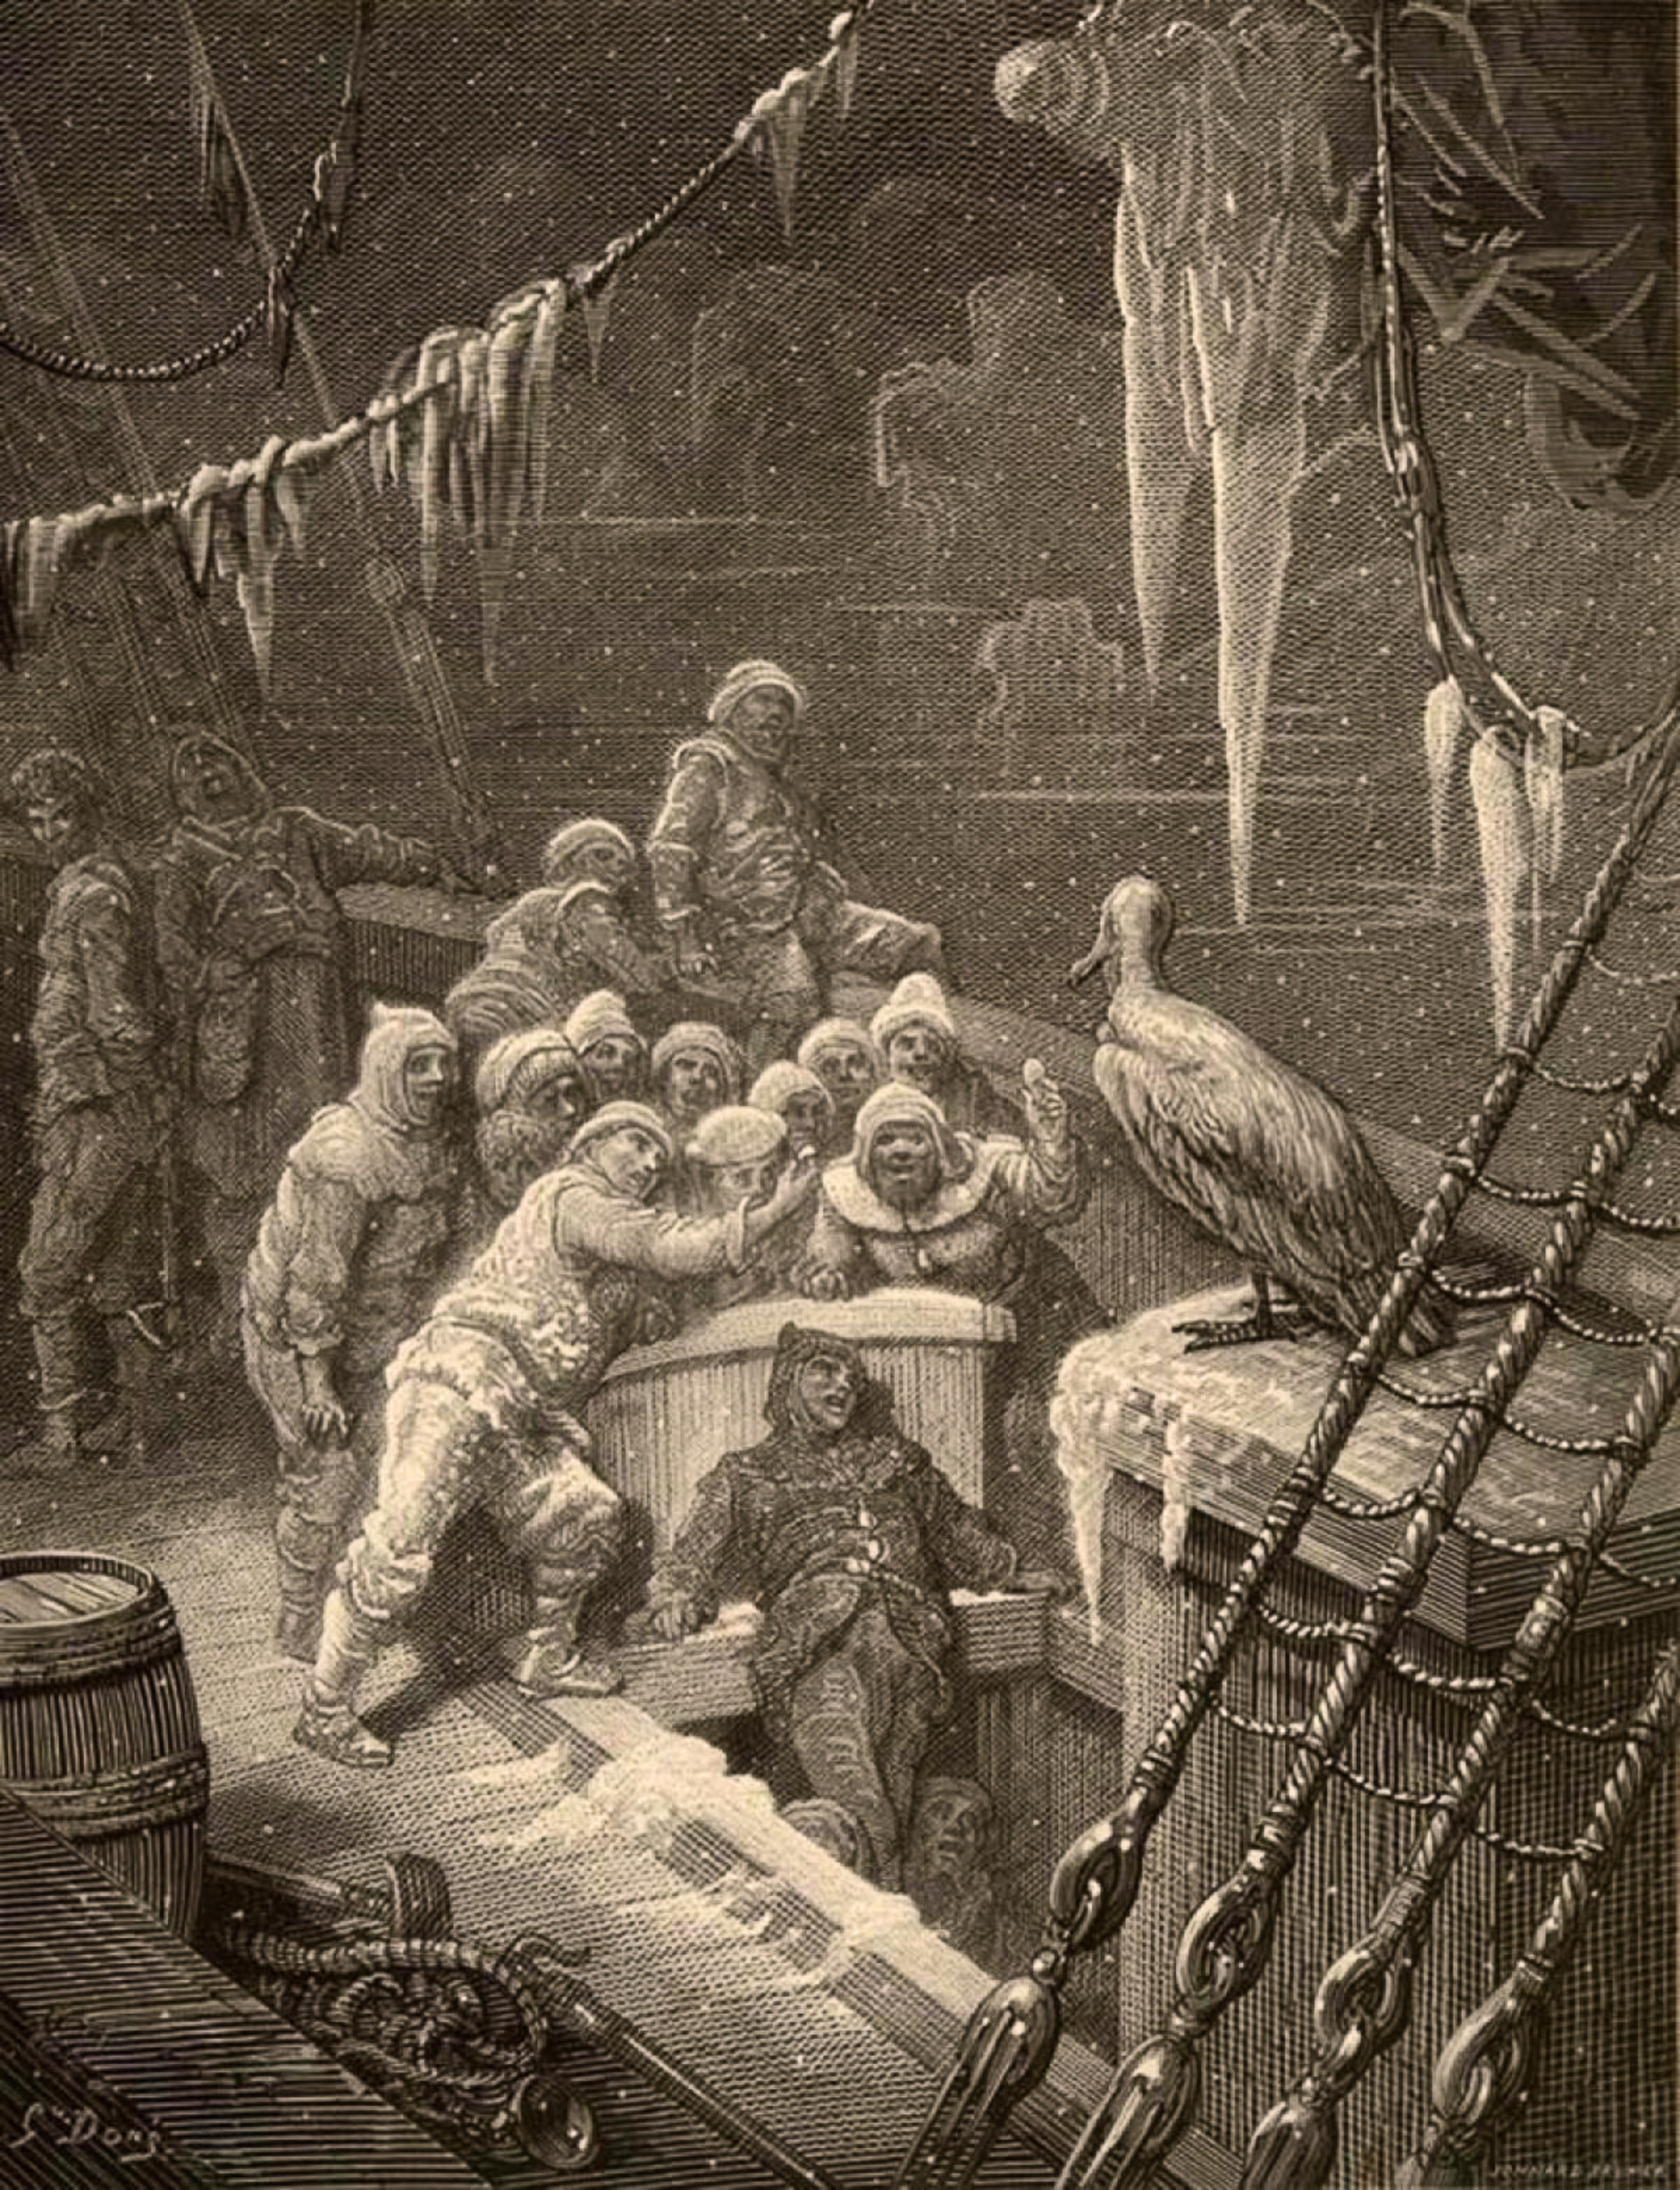 the symbols of the mariner the albatross and ships in rime of the ancient mariner a poem by samuel t Carol rumens: no matter how many times you've read it, the rime of the ancient mariner still retains its hypnotic power.